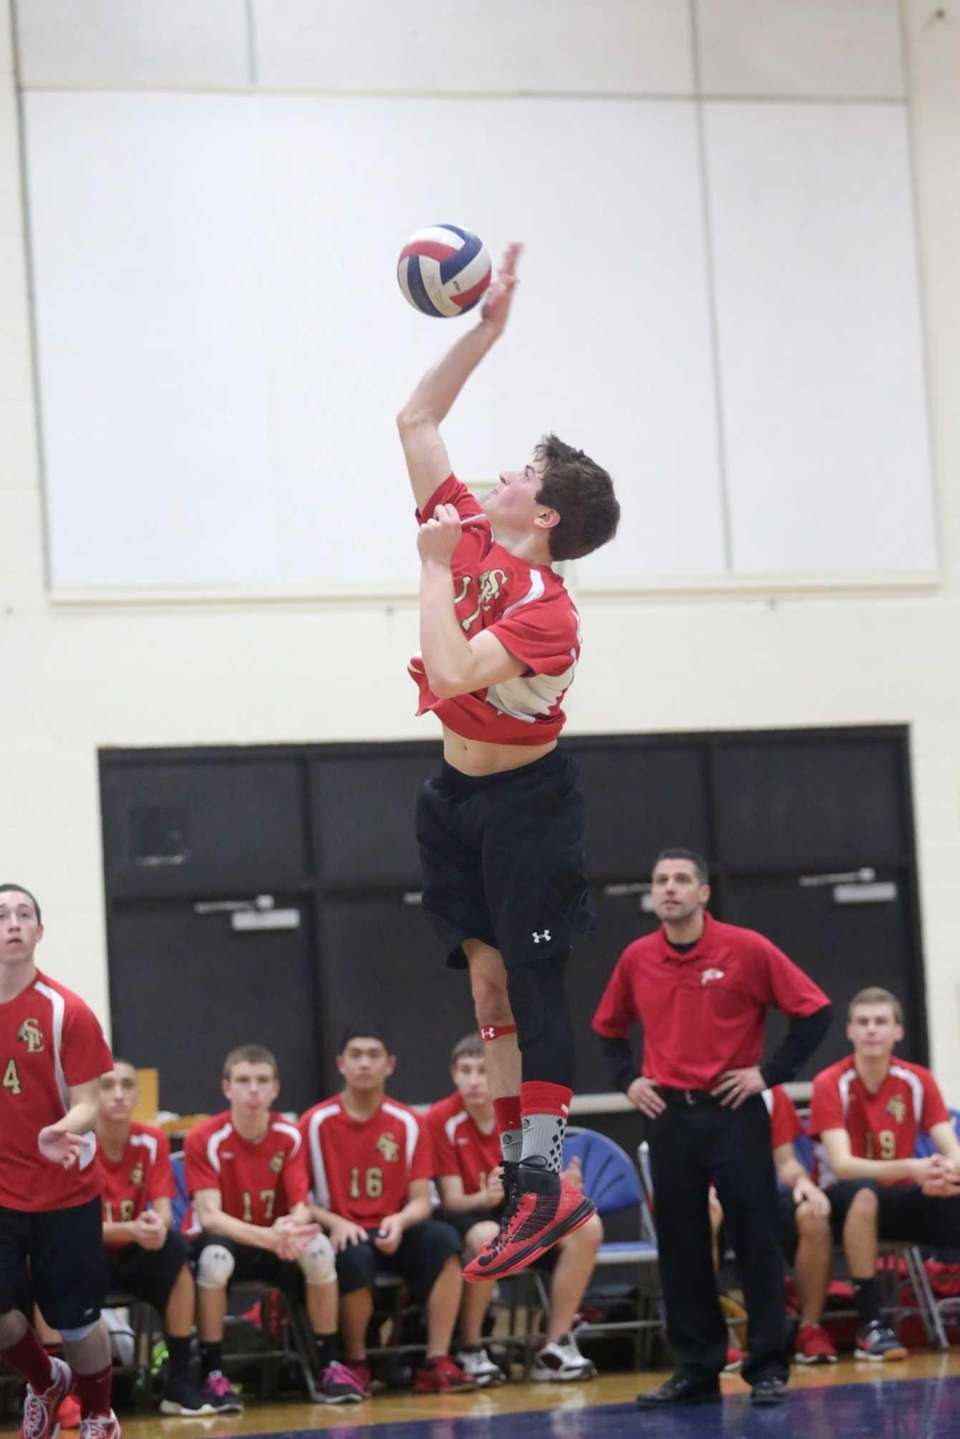 Sachem East's Steve Rodriguez strikes the ball against